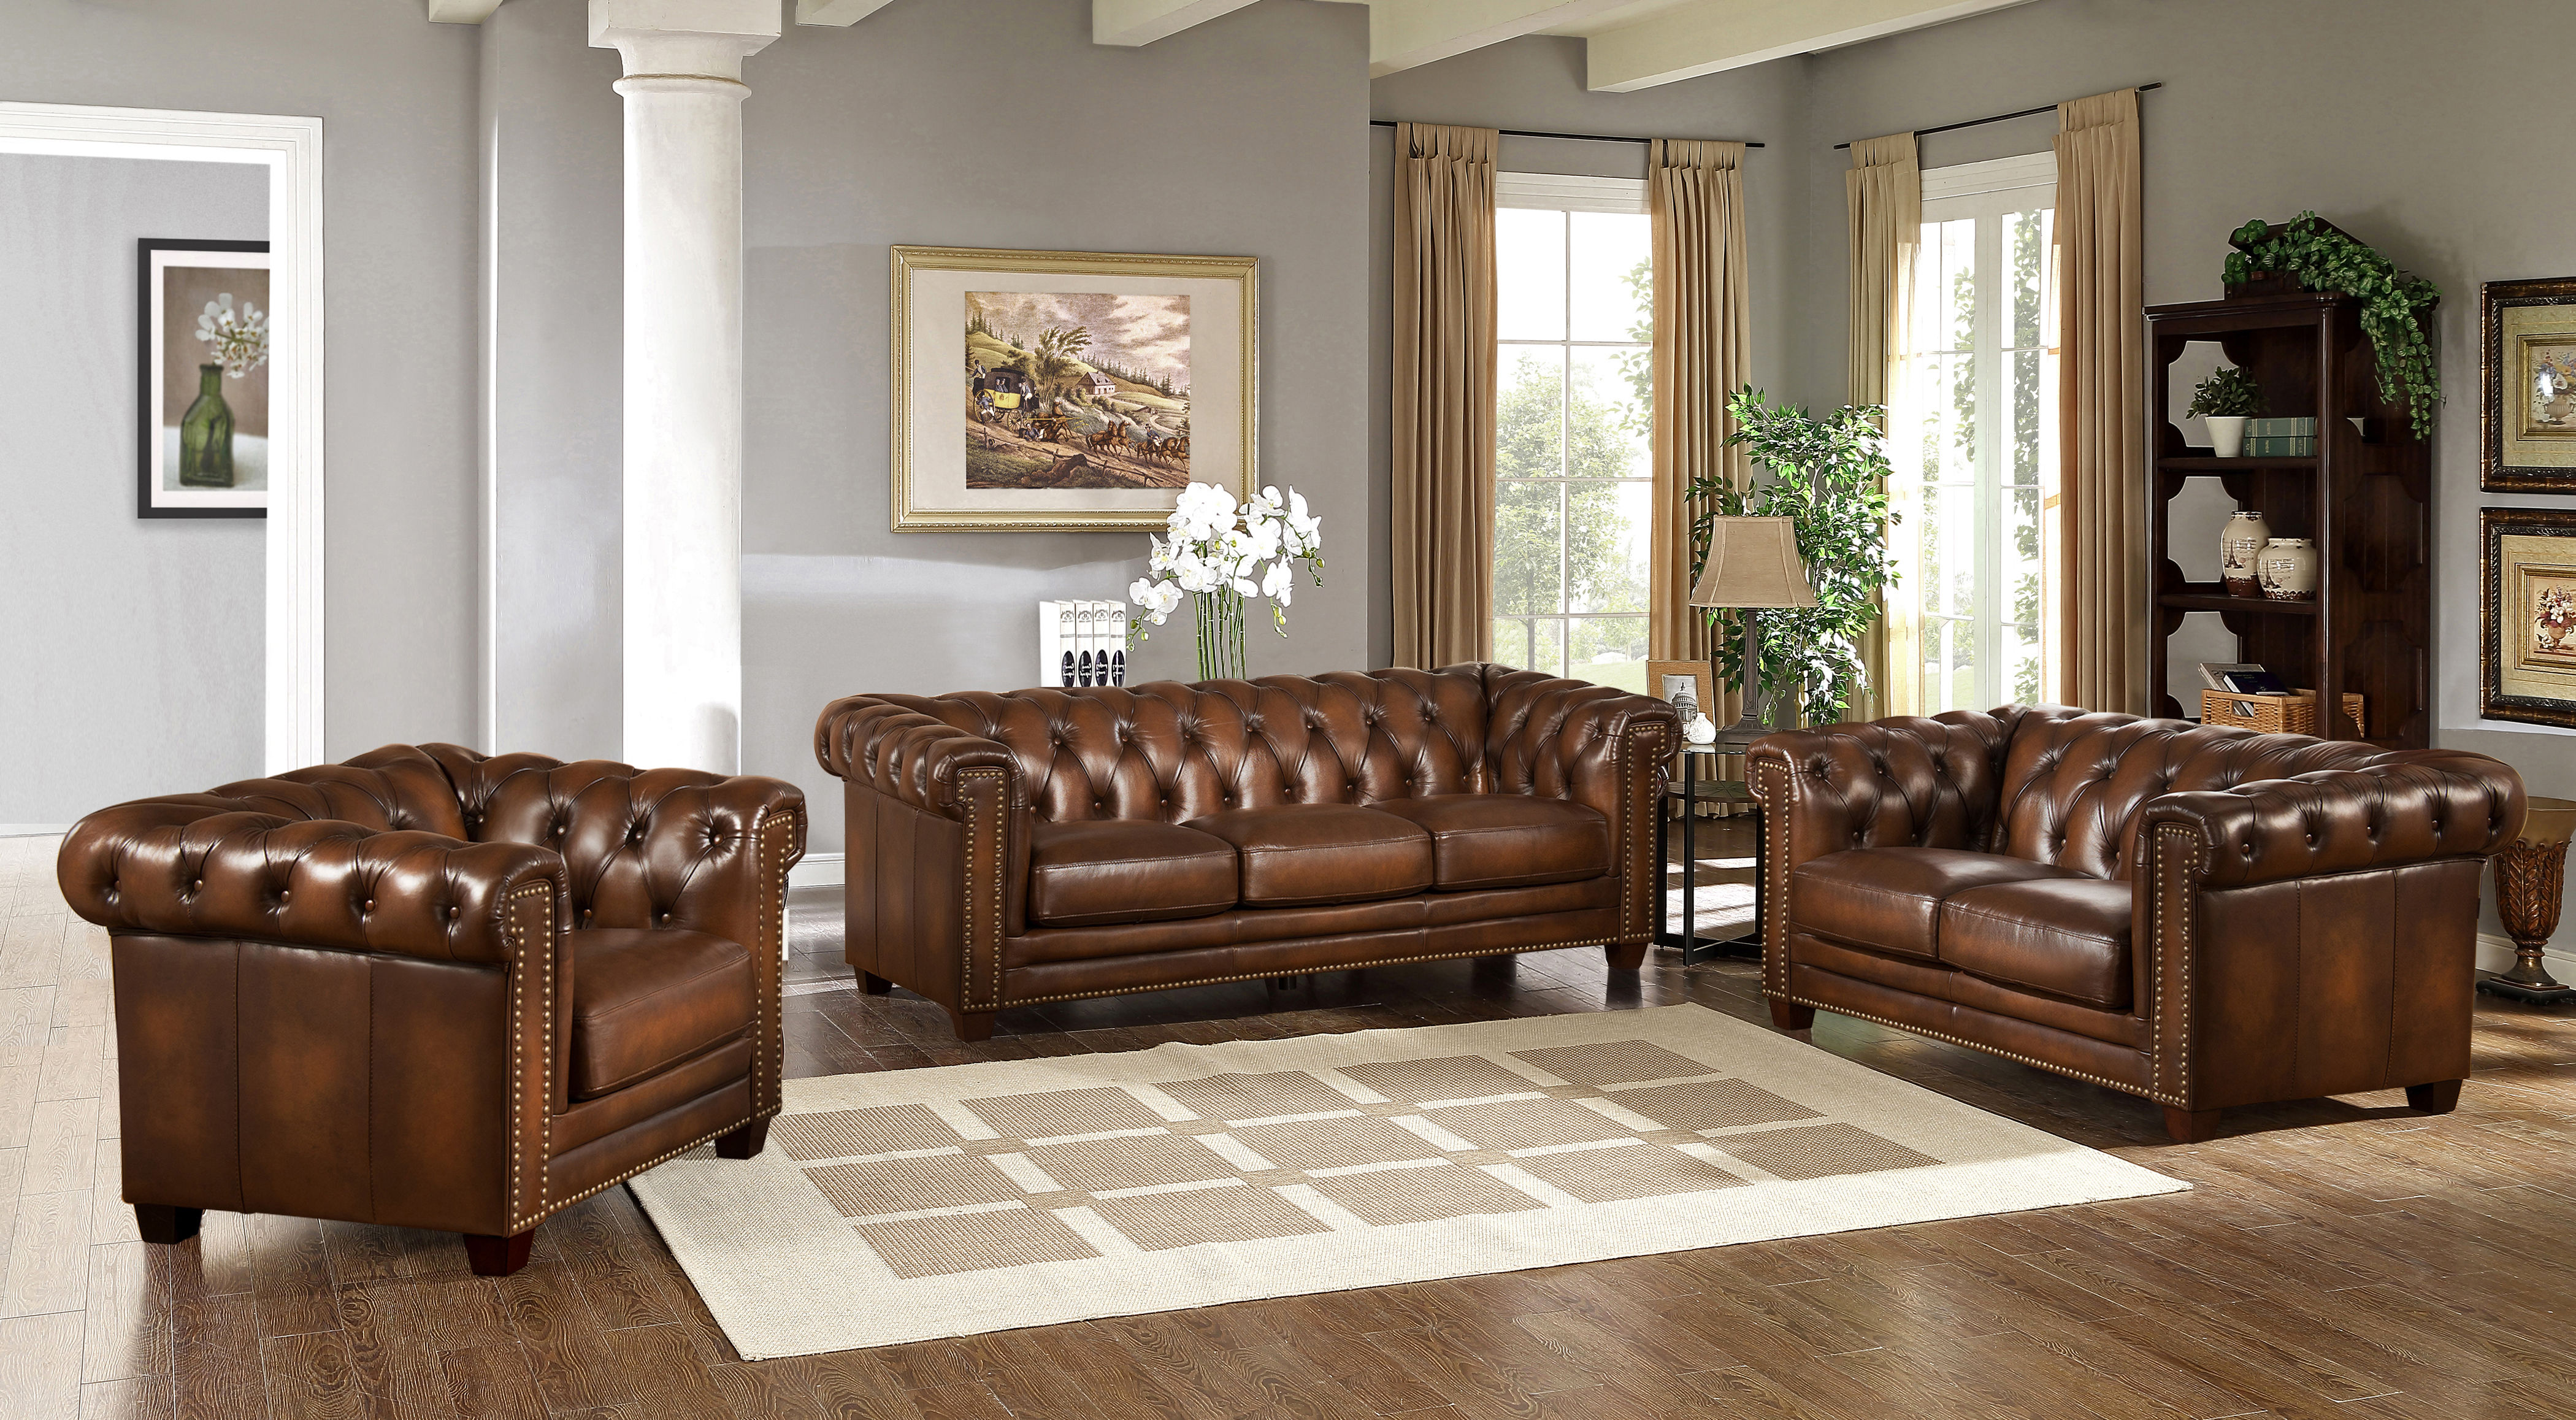 Hydeline Stanley Park Ii Brown 3pc Living Room Set Click To Enlarge